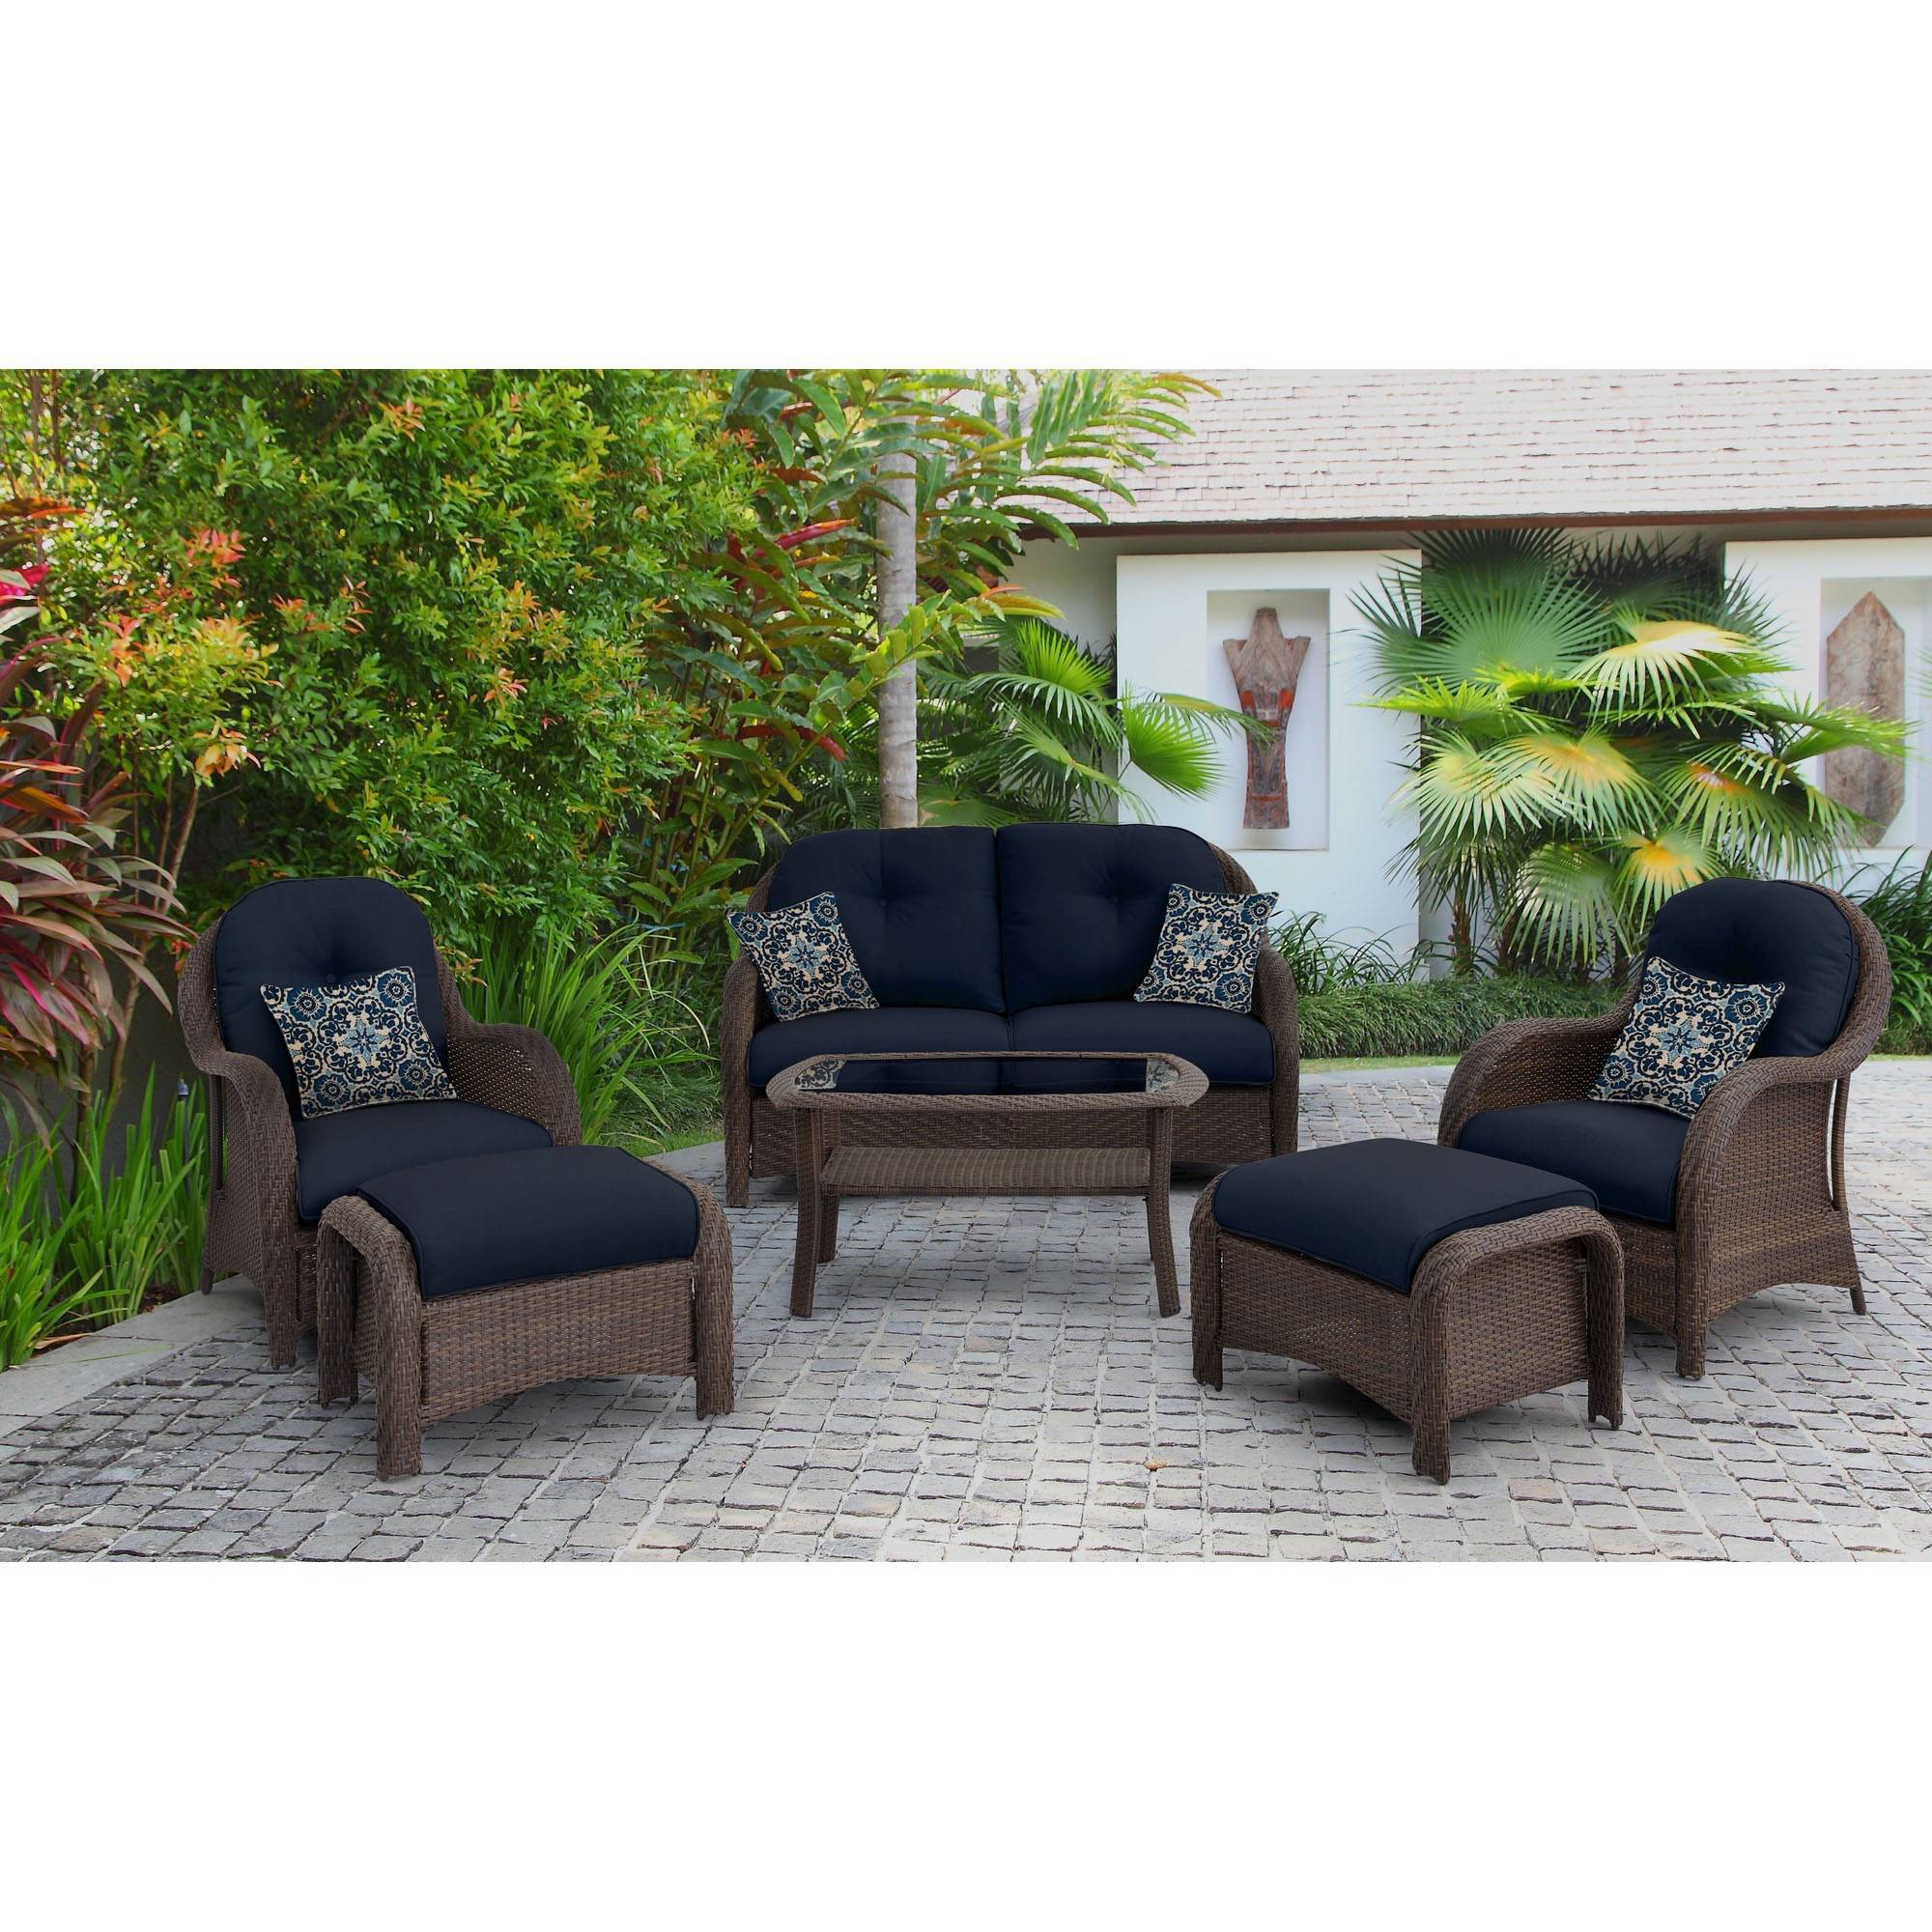 6-Piece Woven Seating Set